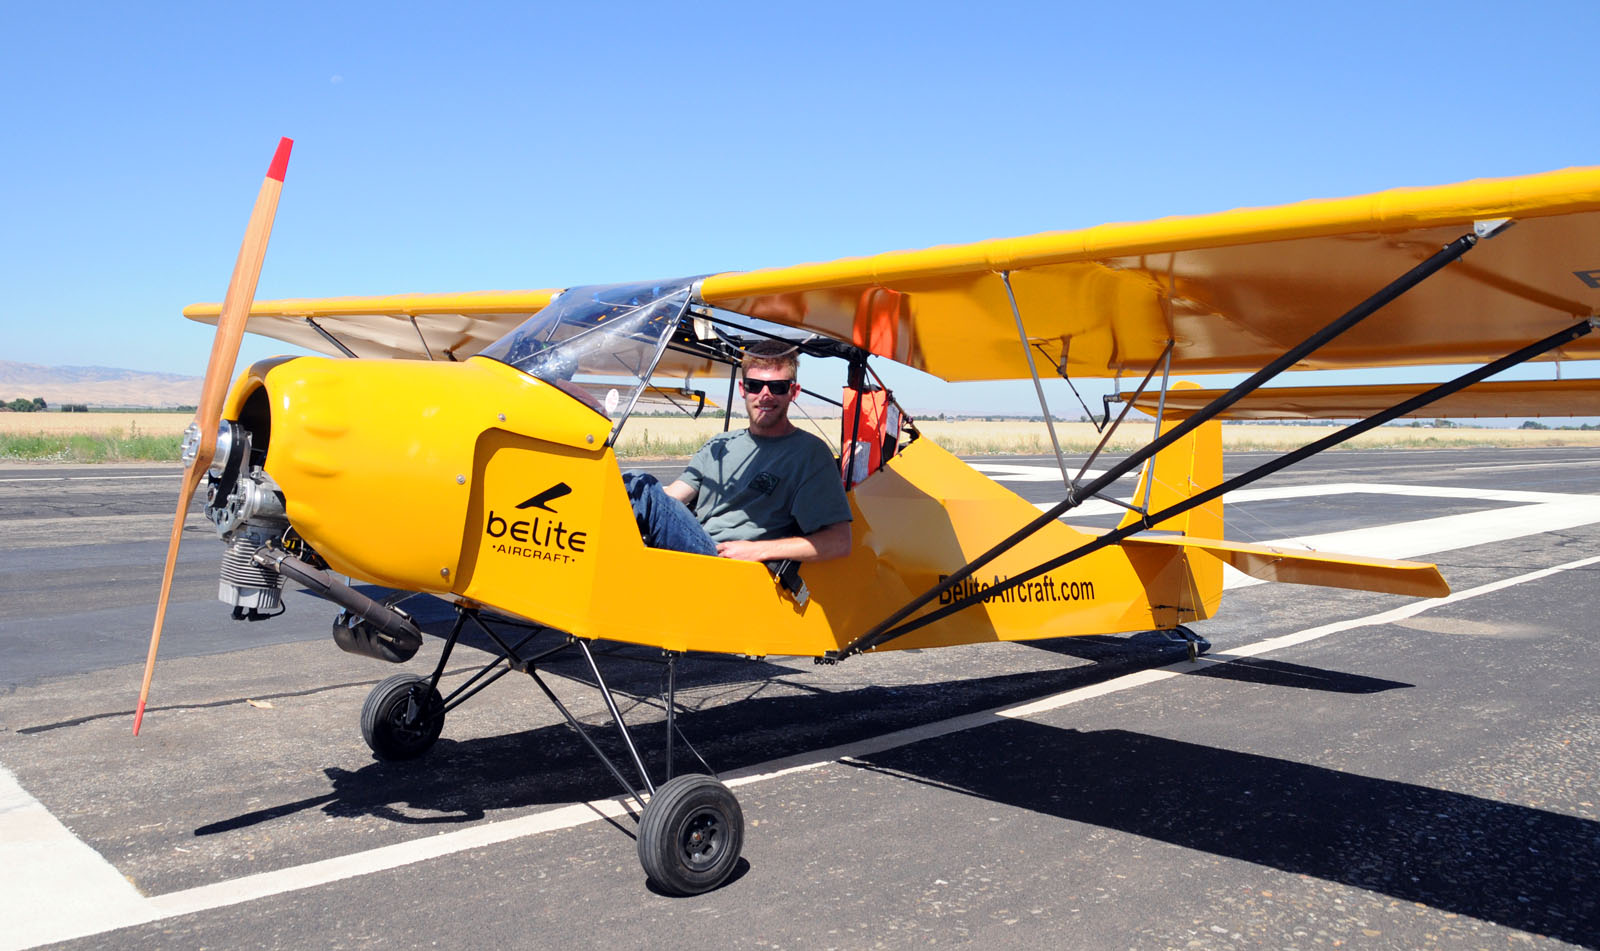 Cost Of Ultralight Aircraft http://jameswiebe.blogspot.com/2011/06/belite-ultralight-aircraft-mythbusters.html